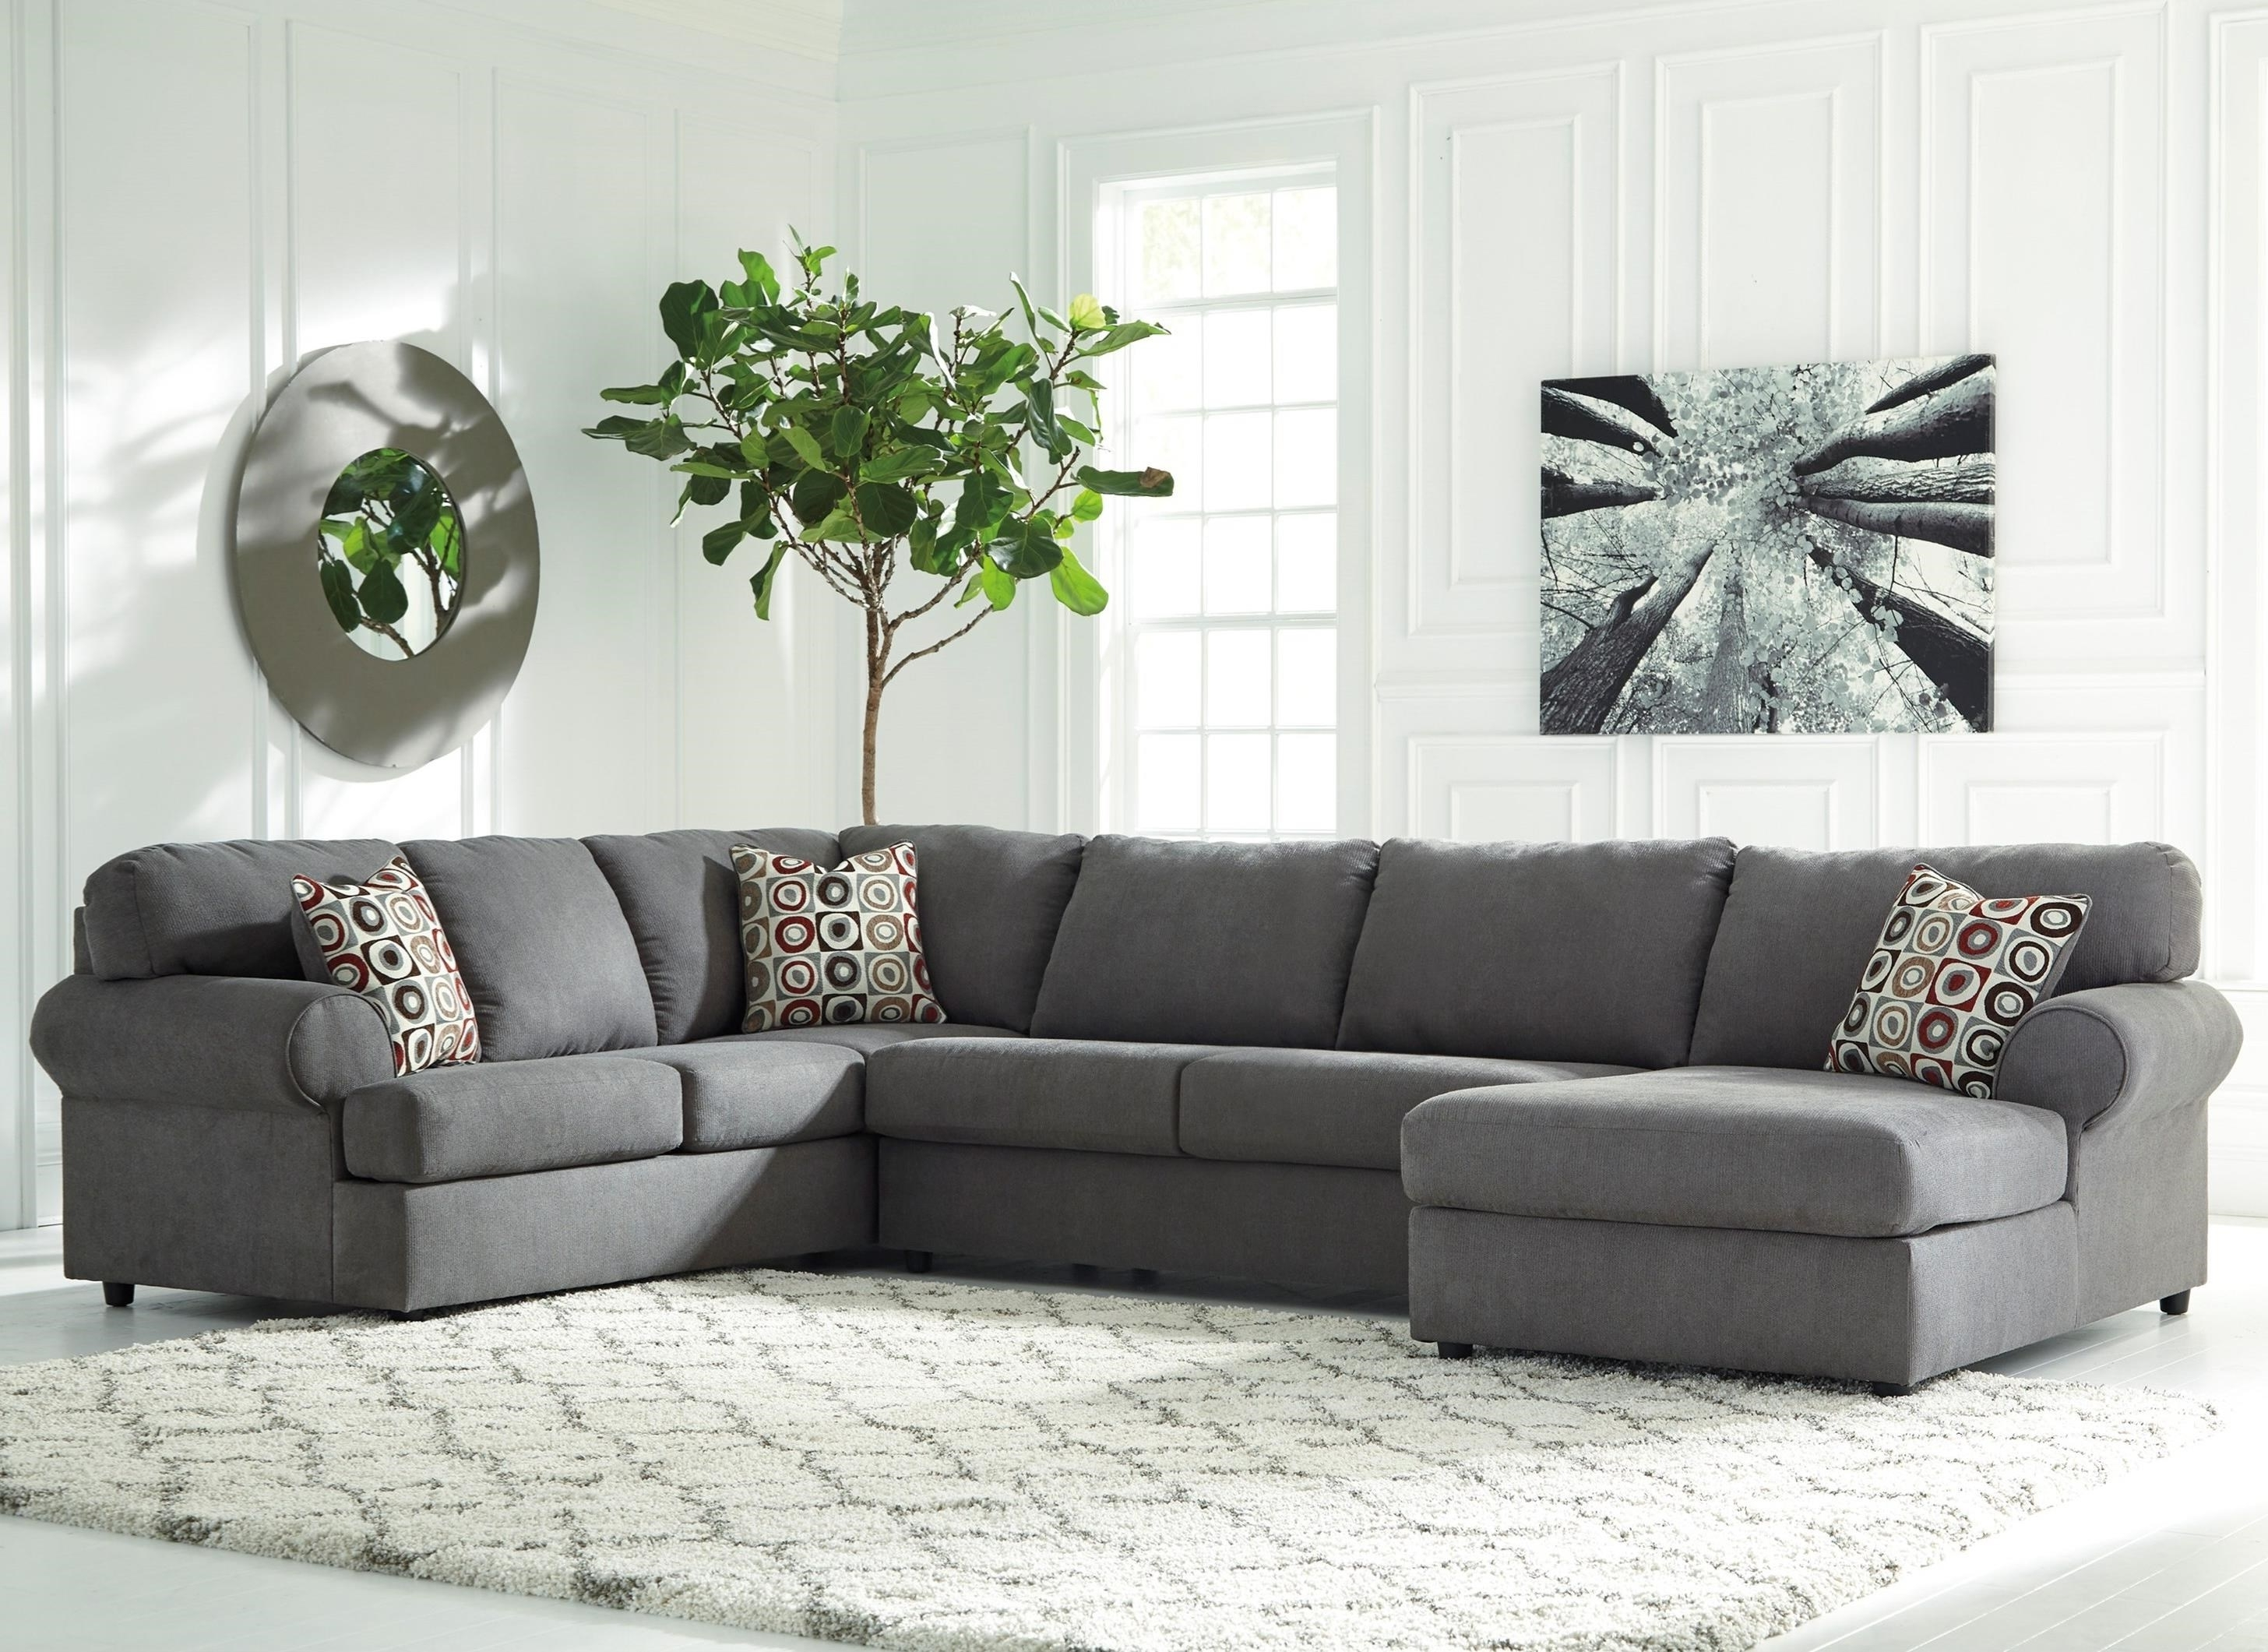 Most Recently Released Signature Designashley Jayceon 3 Piece Sectional With Left Throughout 3 Piece Sectionals With Chaise (View 11 of 15)